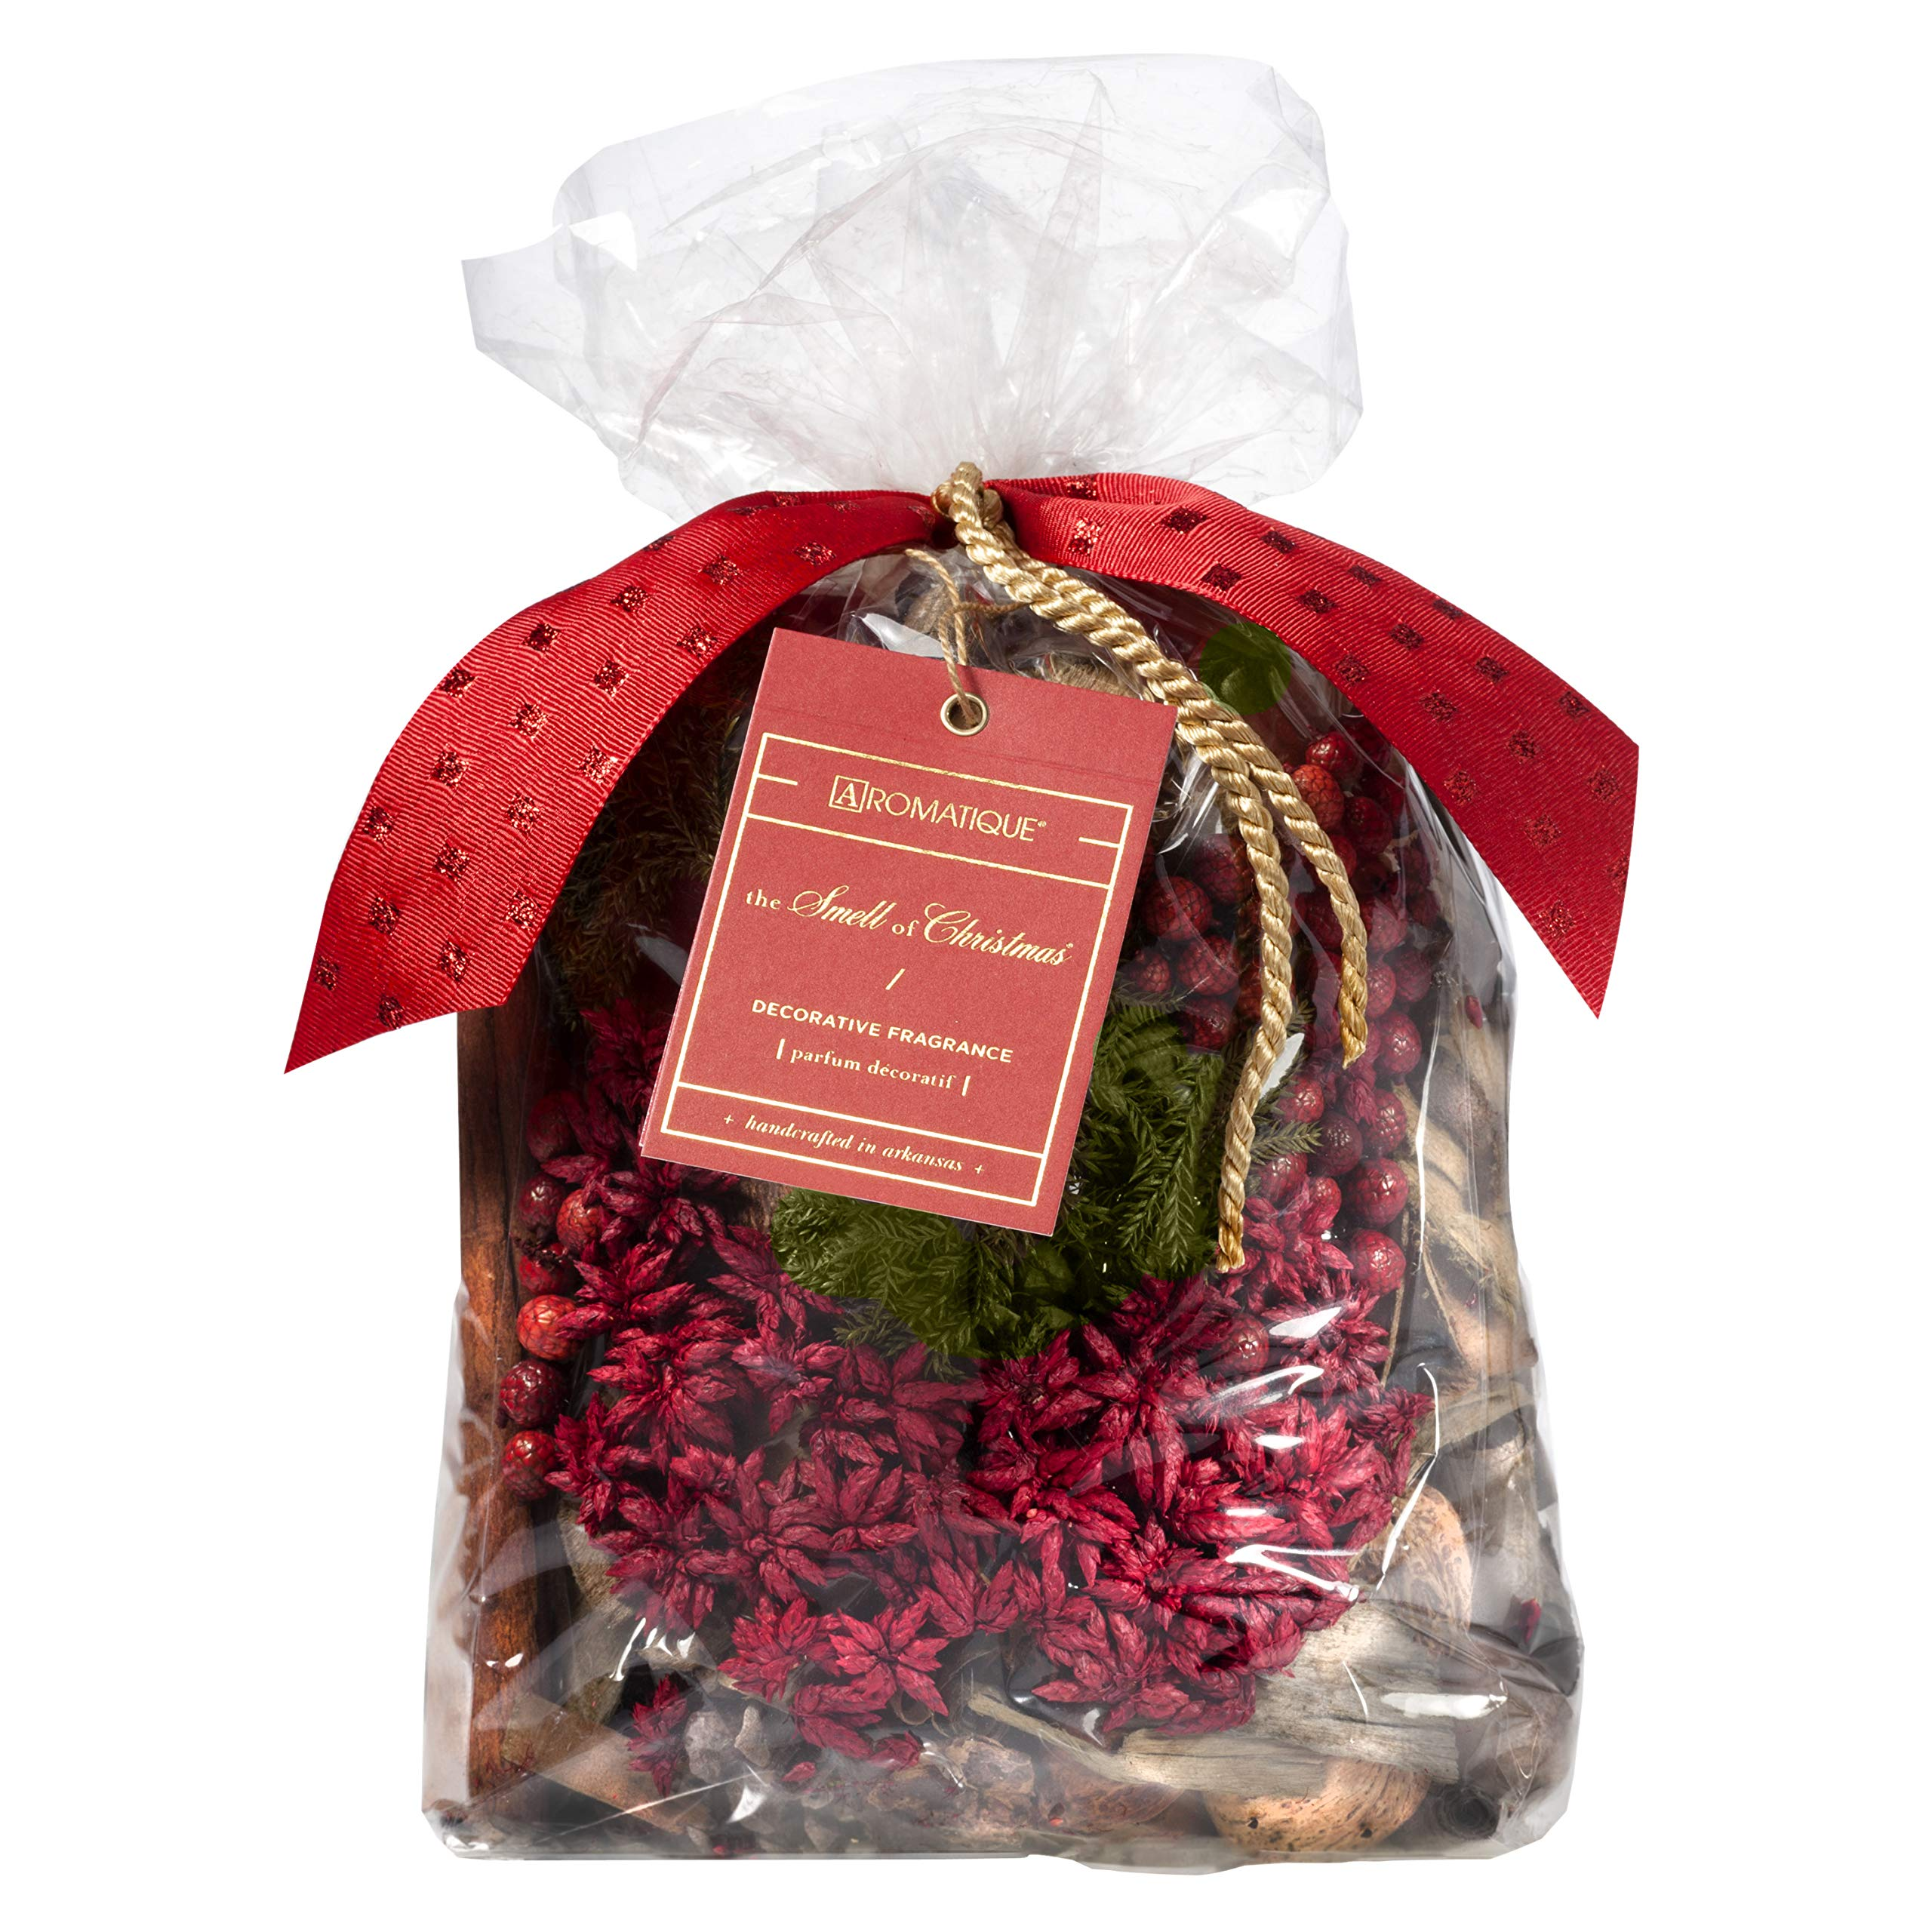 Aromatique The Smell of Christmas Decorative Potpourri 14 Oz Bag by Aromatique